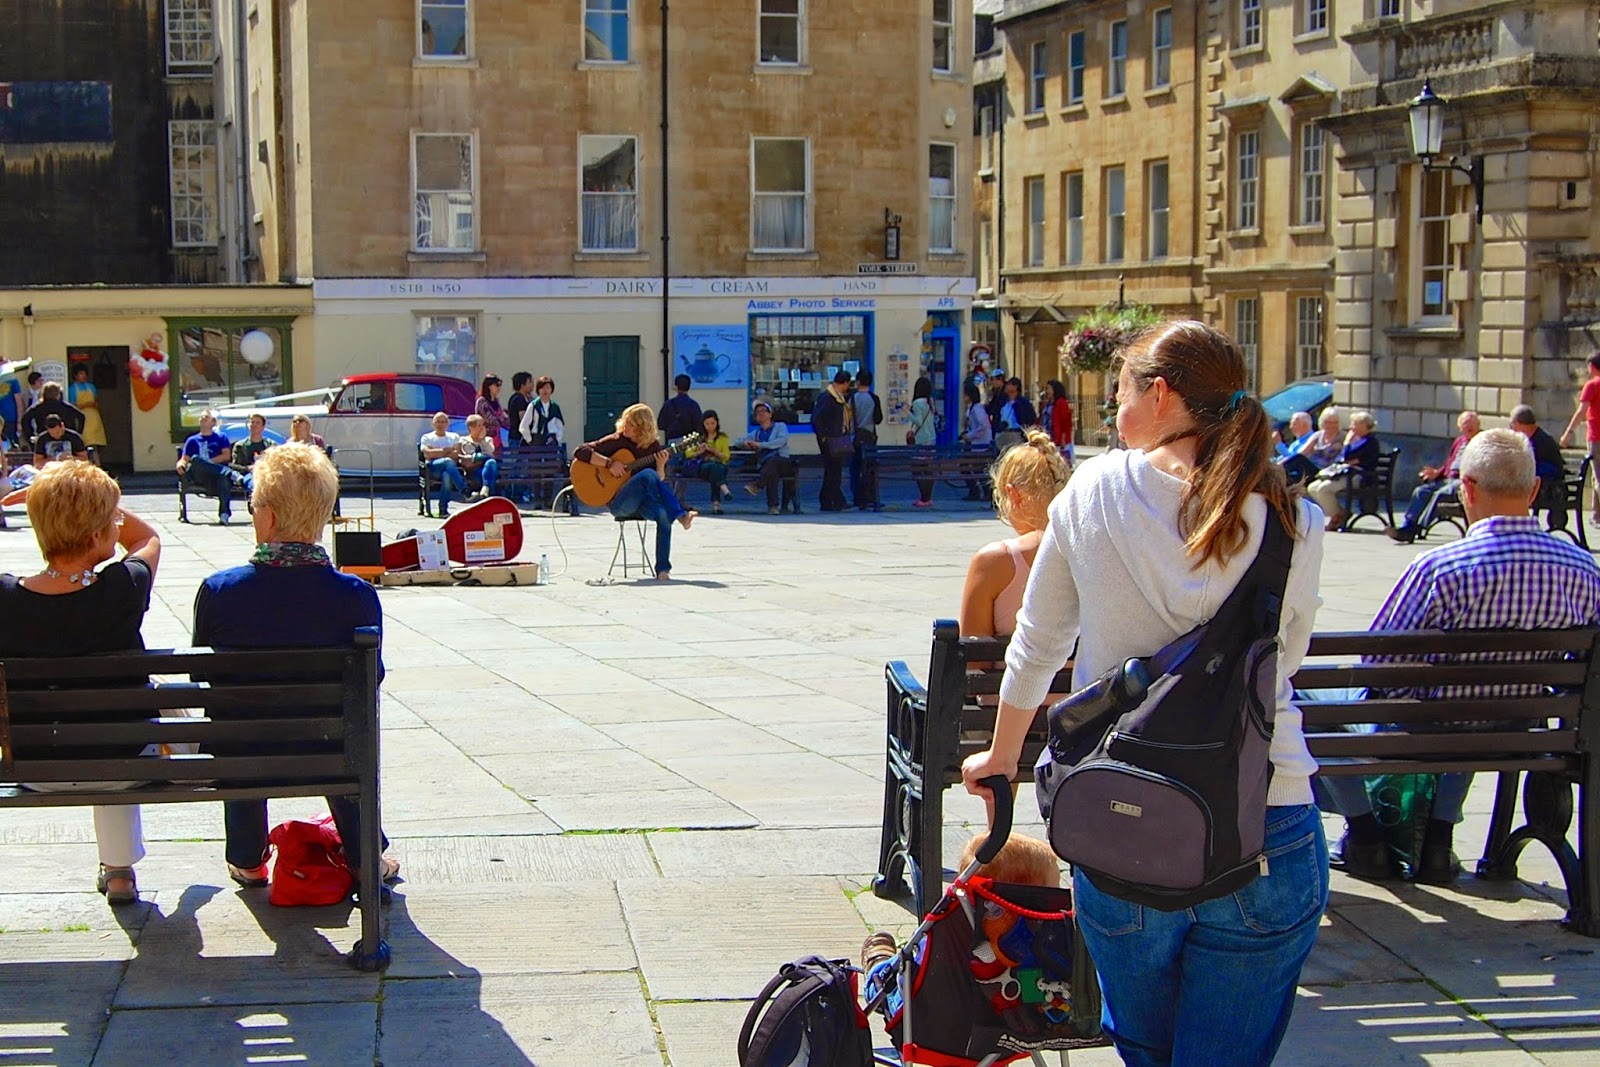 Street busker in Bath